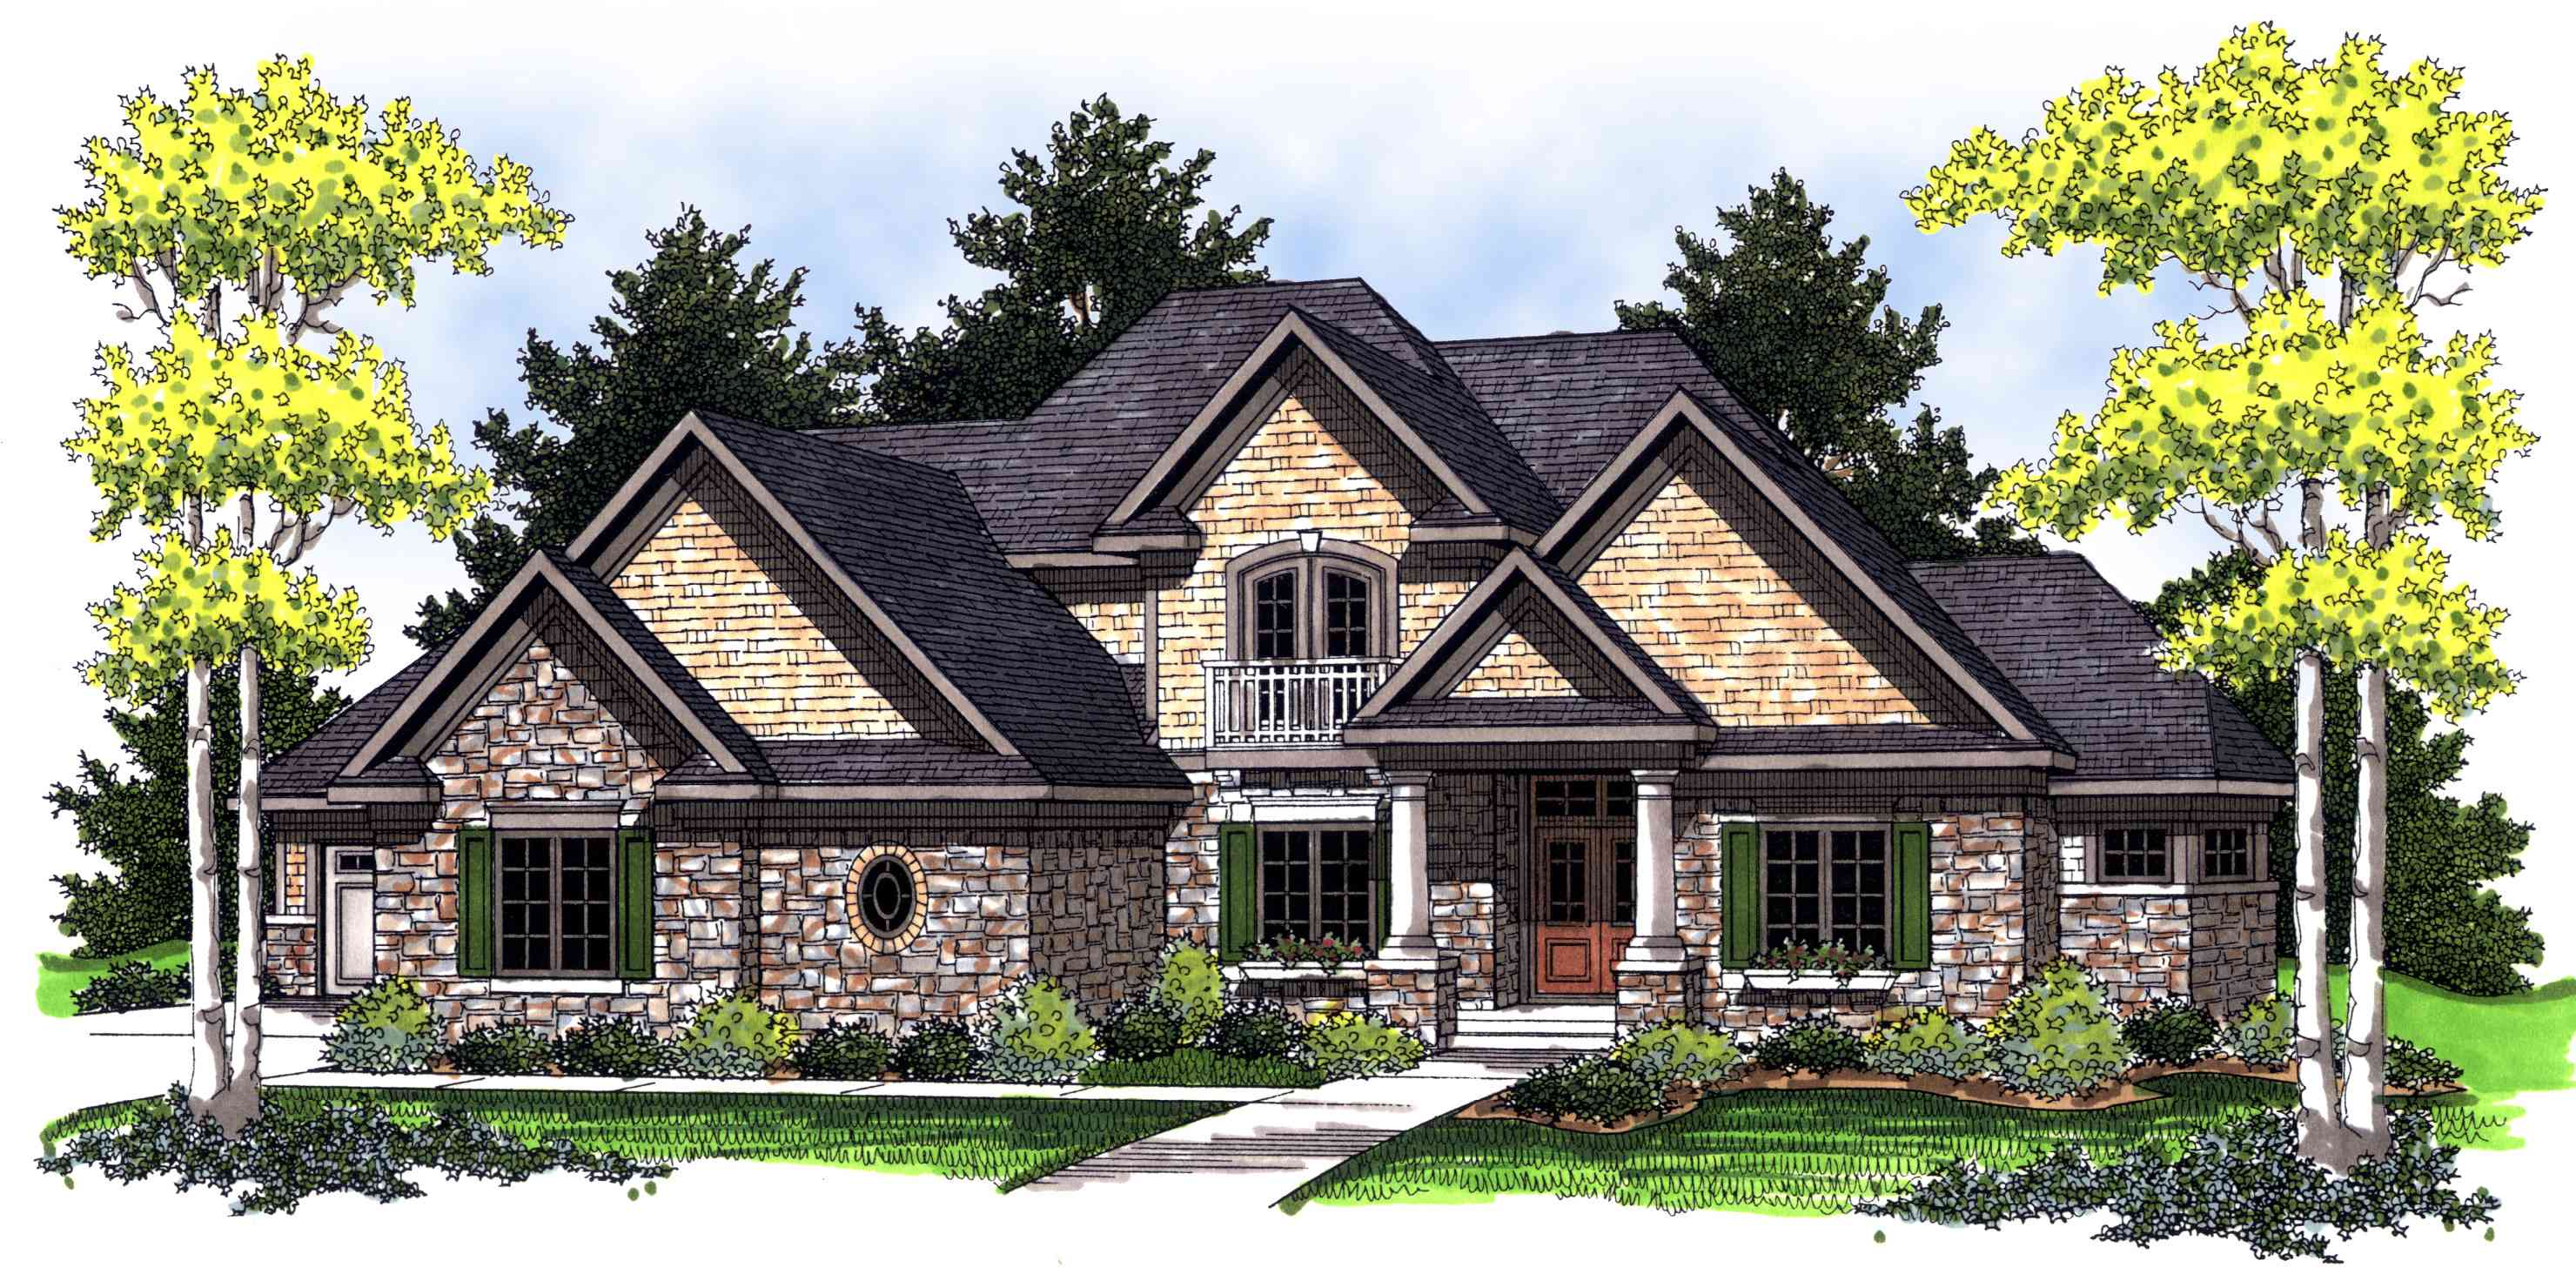 Bay windows throughout european accented home plan for European farmhouse plans